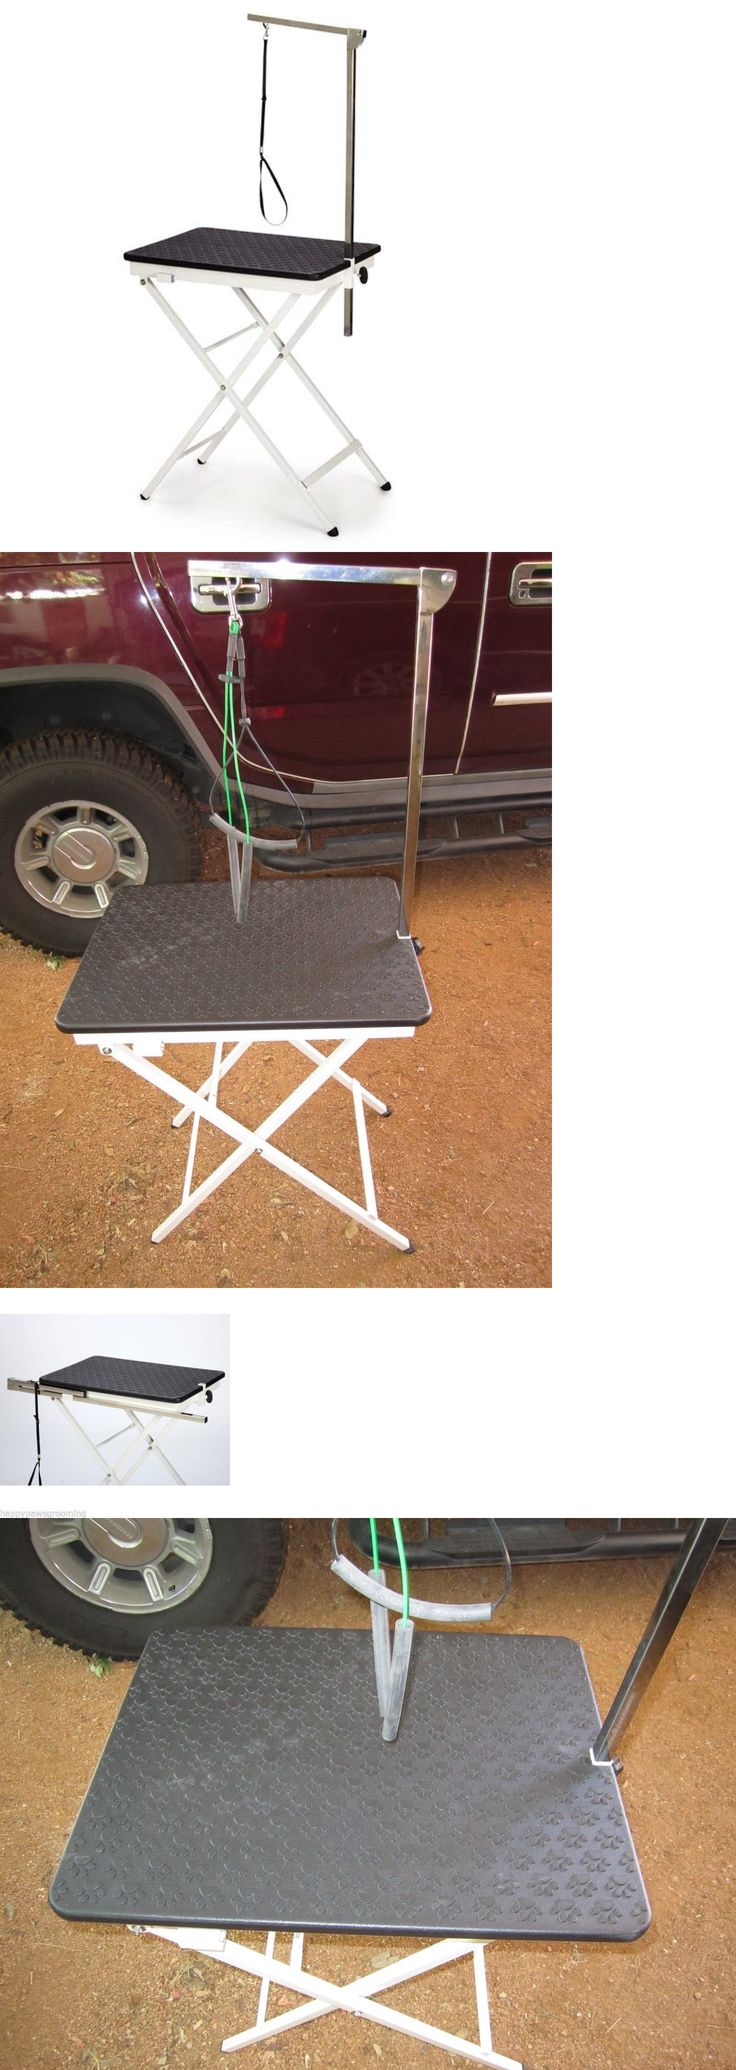 Grooming tables 146241 dog pet portable folding show home mobile grooming table set adjustable